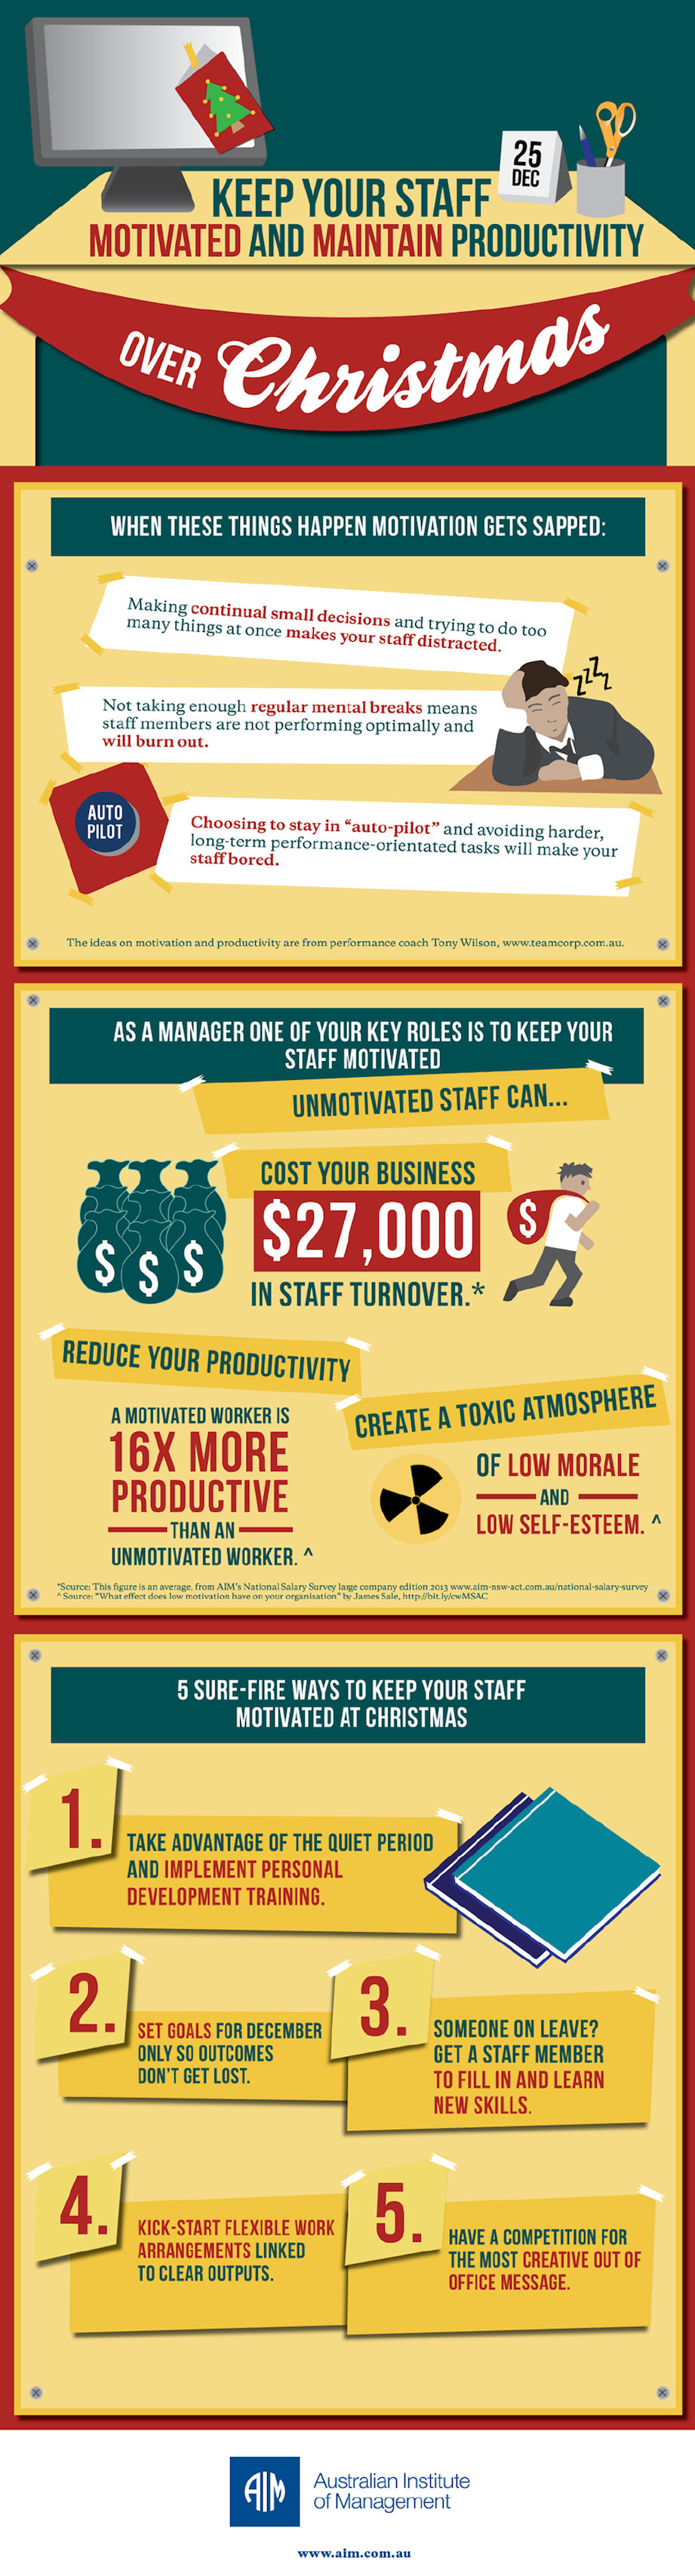 How to keep your staff motivated over Christmas | Infographics ...